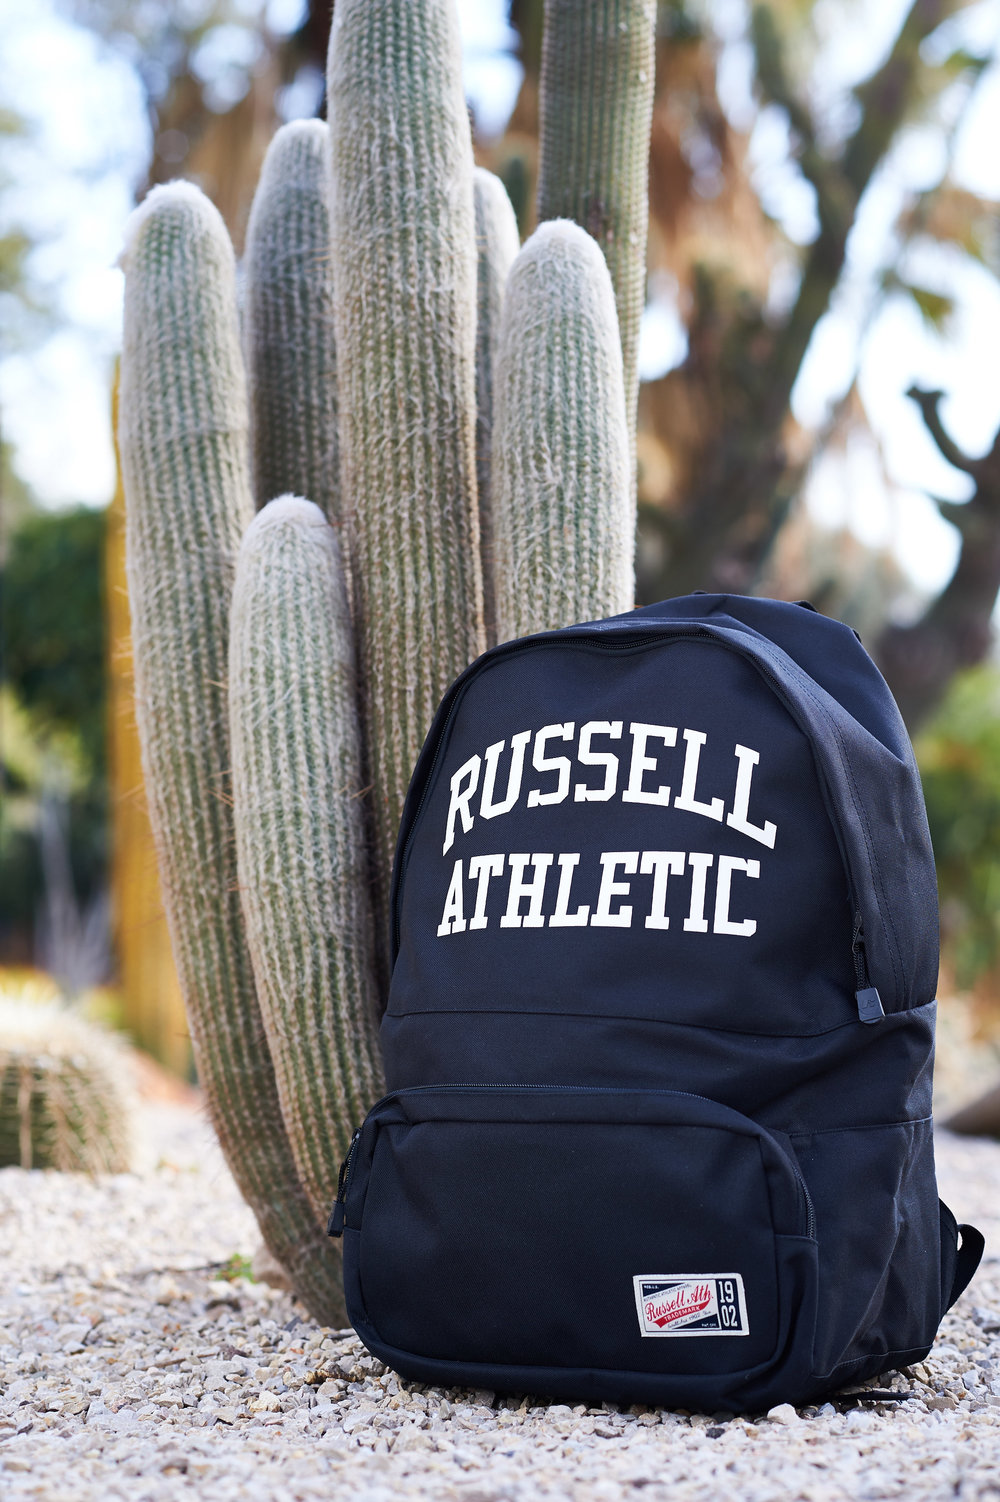 Russell Athletic Summer 2017_exterior_day2_0144.jpg